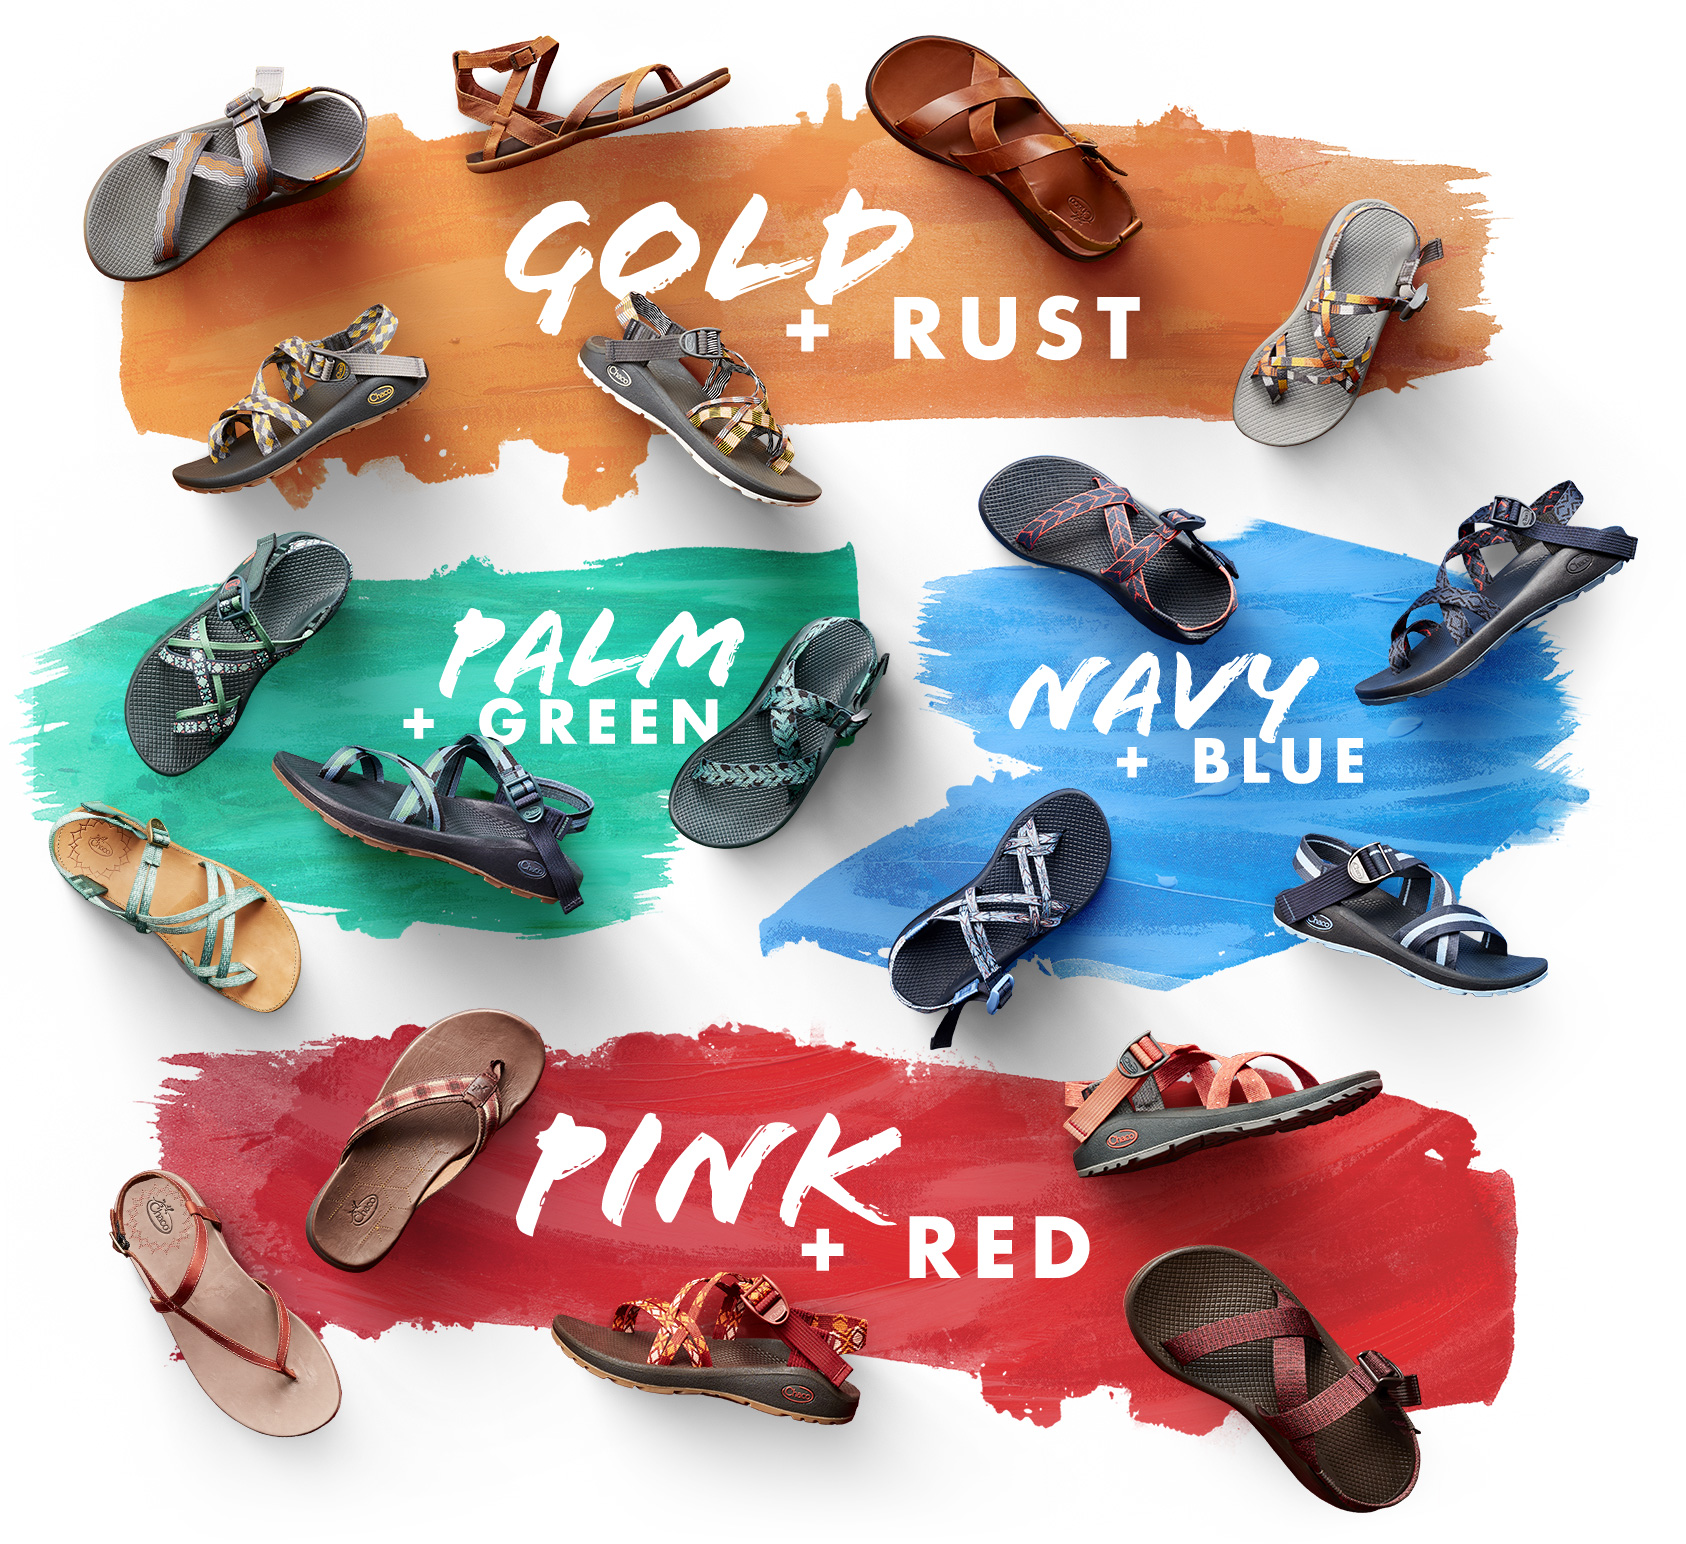 spring colors image: gold & rust, palm & green, navy & blue, pink & red